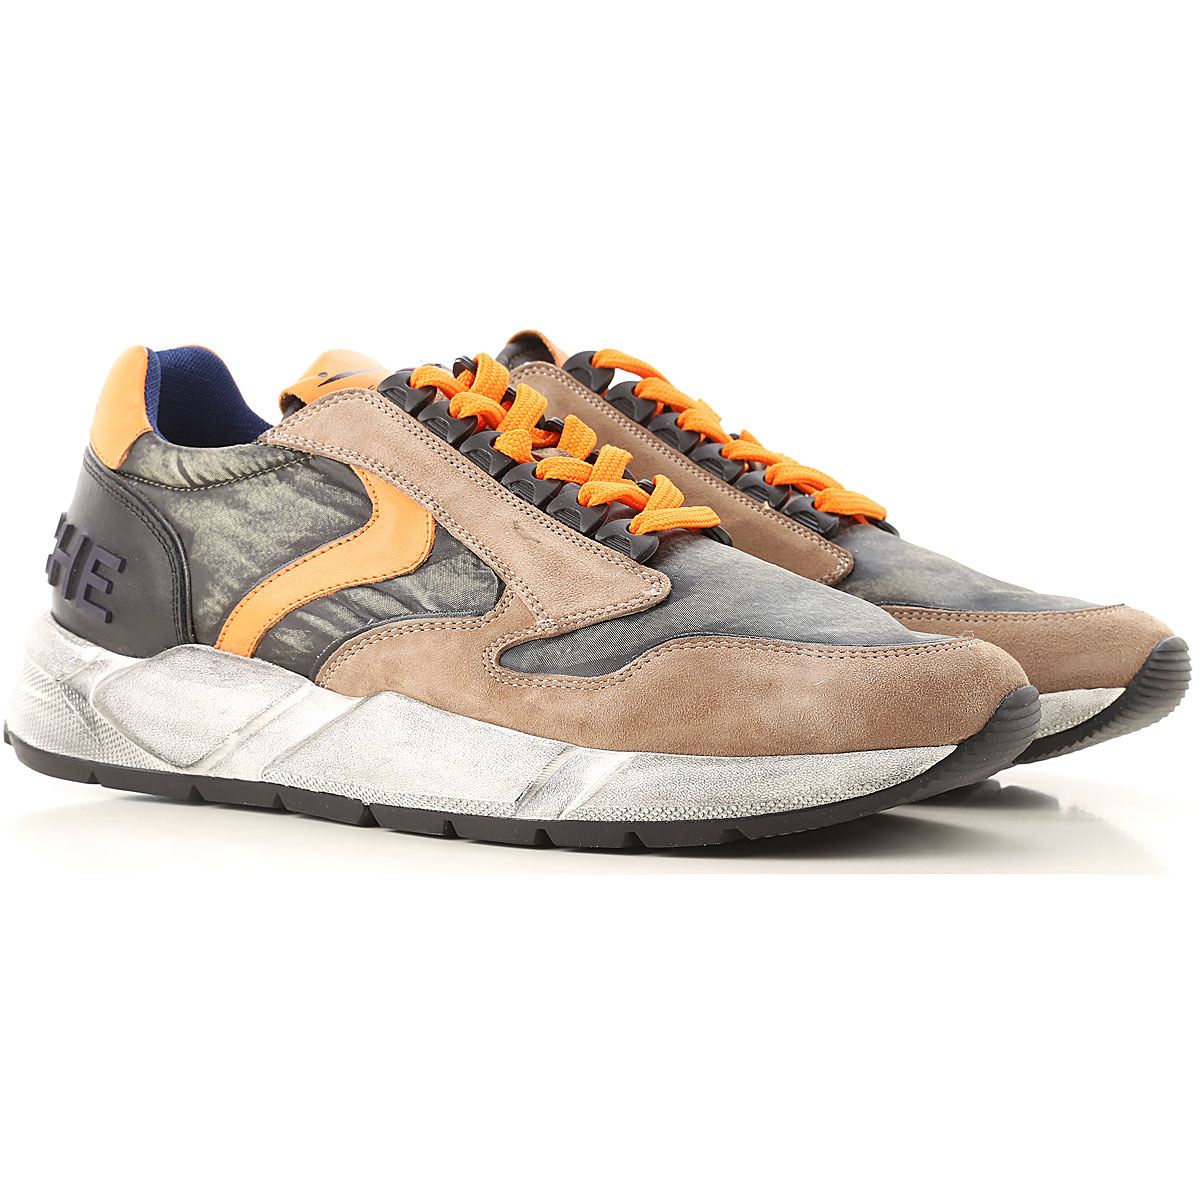 Image of Voile Blanche Sneakers for Men, Stone, Nylon, 2017, 10 10.5 8 9